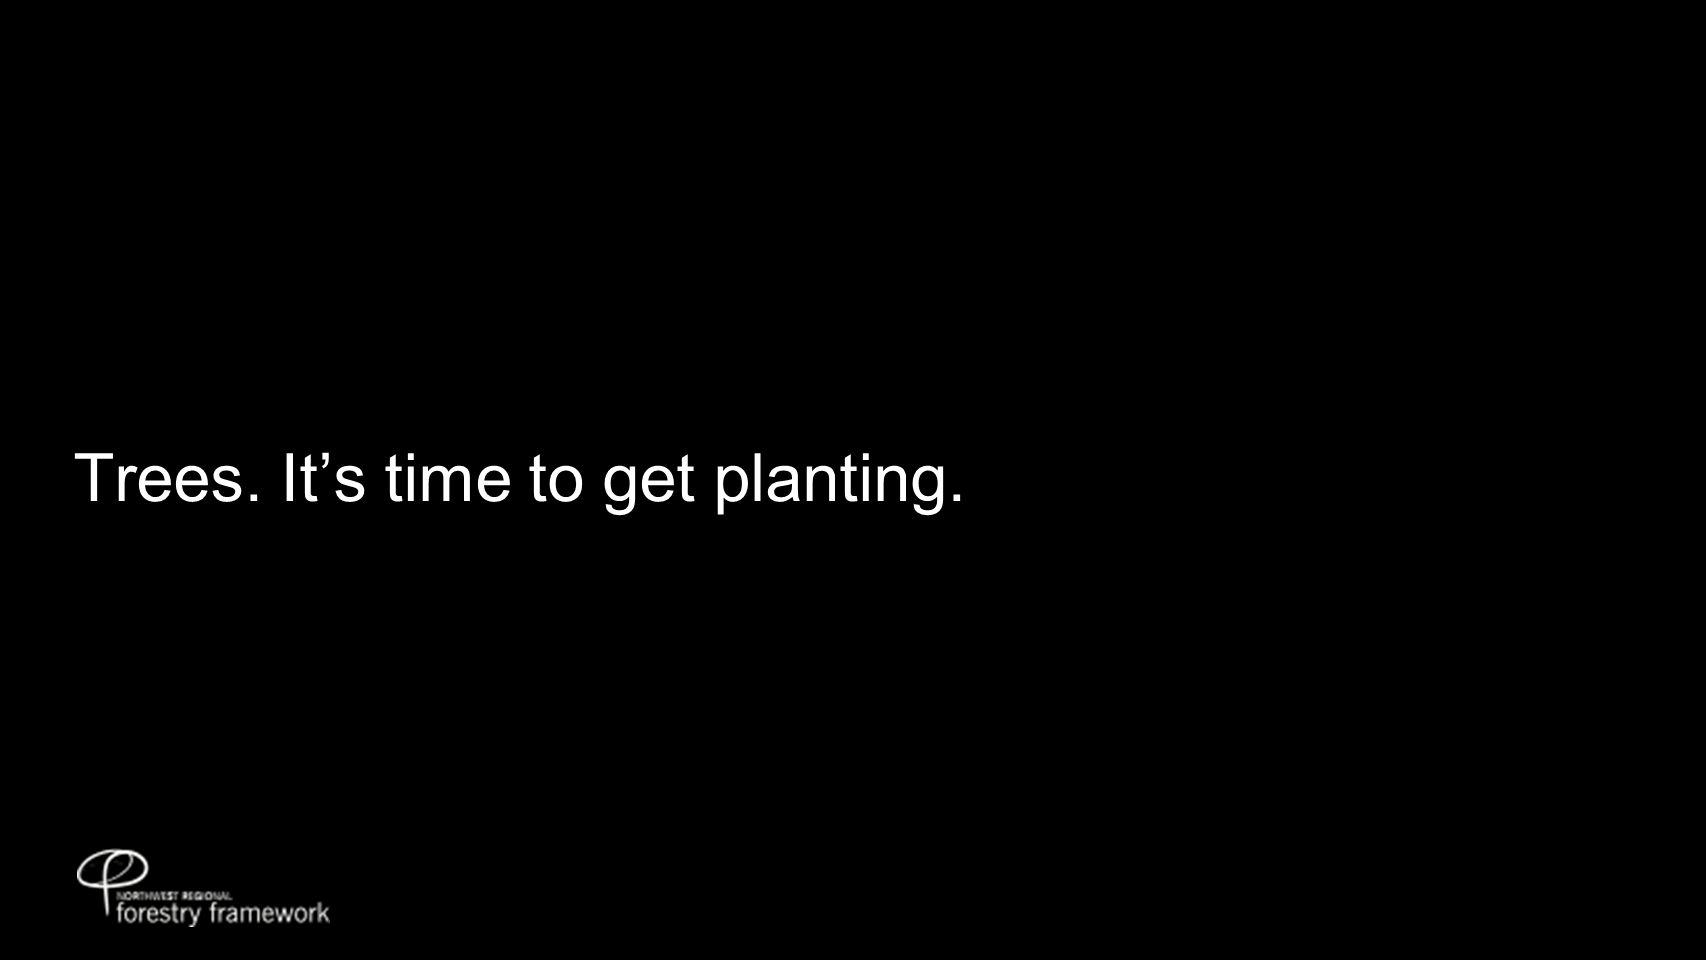 Trees. It's time to get planting.